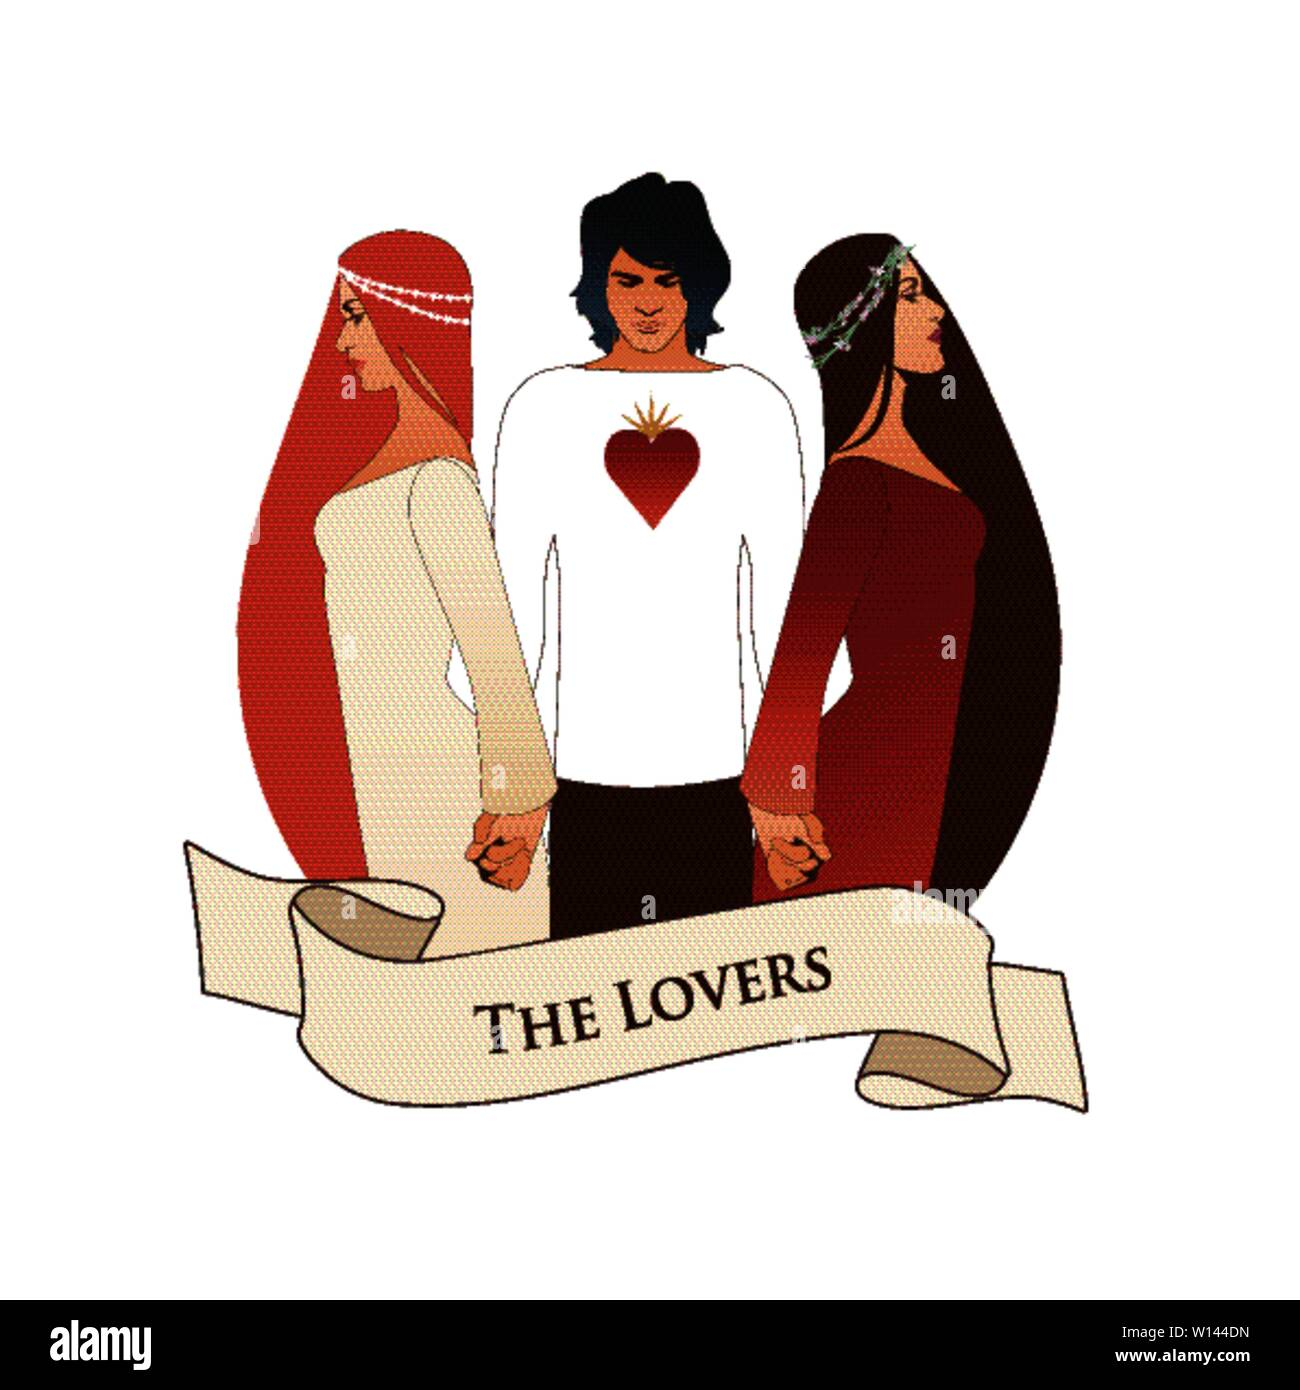 Major Arcana Emblem Tarot Card. The Lovers. Young man holding two beautiful women by the hand. T-shirt with heart on the chest, isolated on white back - Stock Image